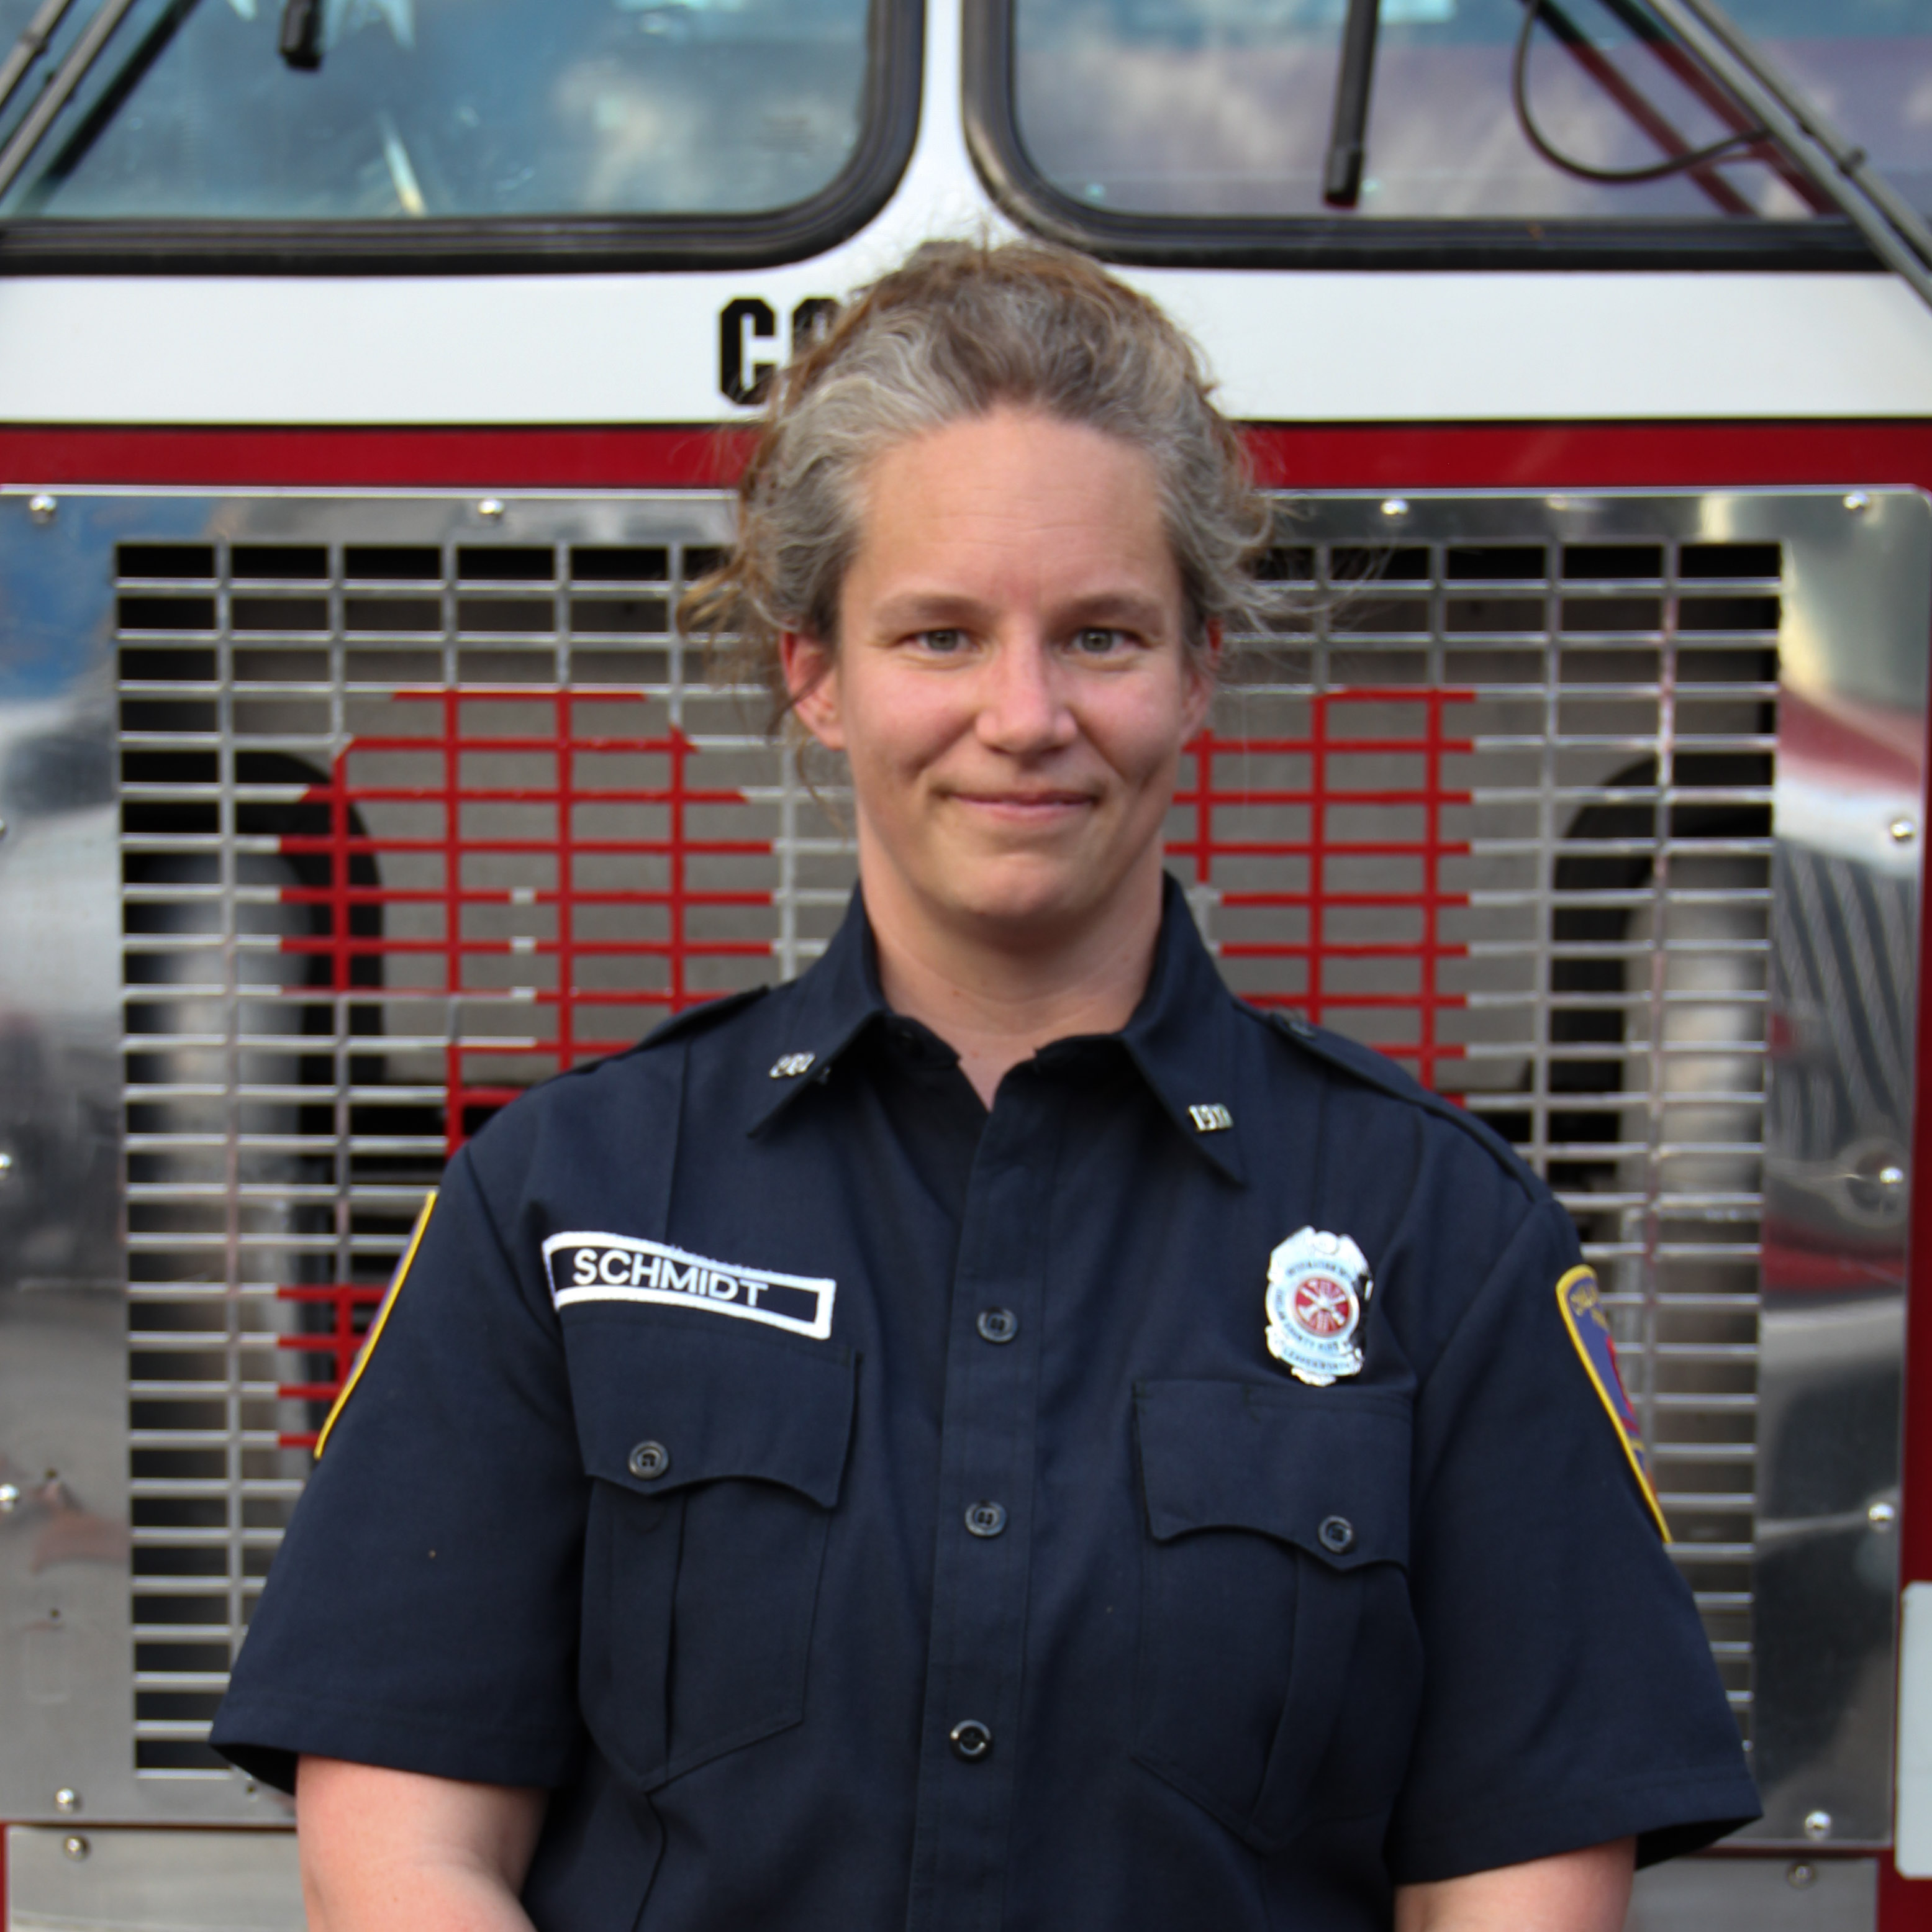 Volunteer Officer Public Information Officer and Firefighter Annie Schmidt